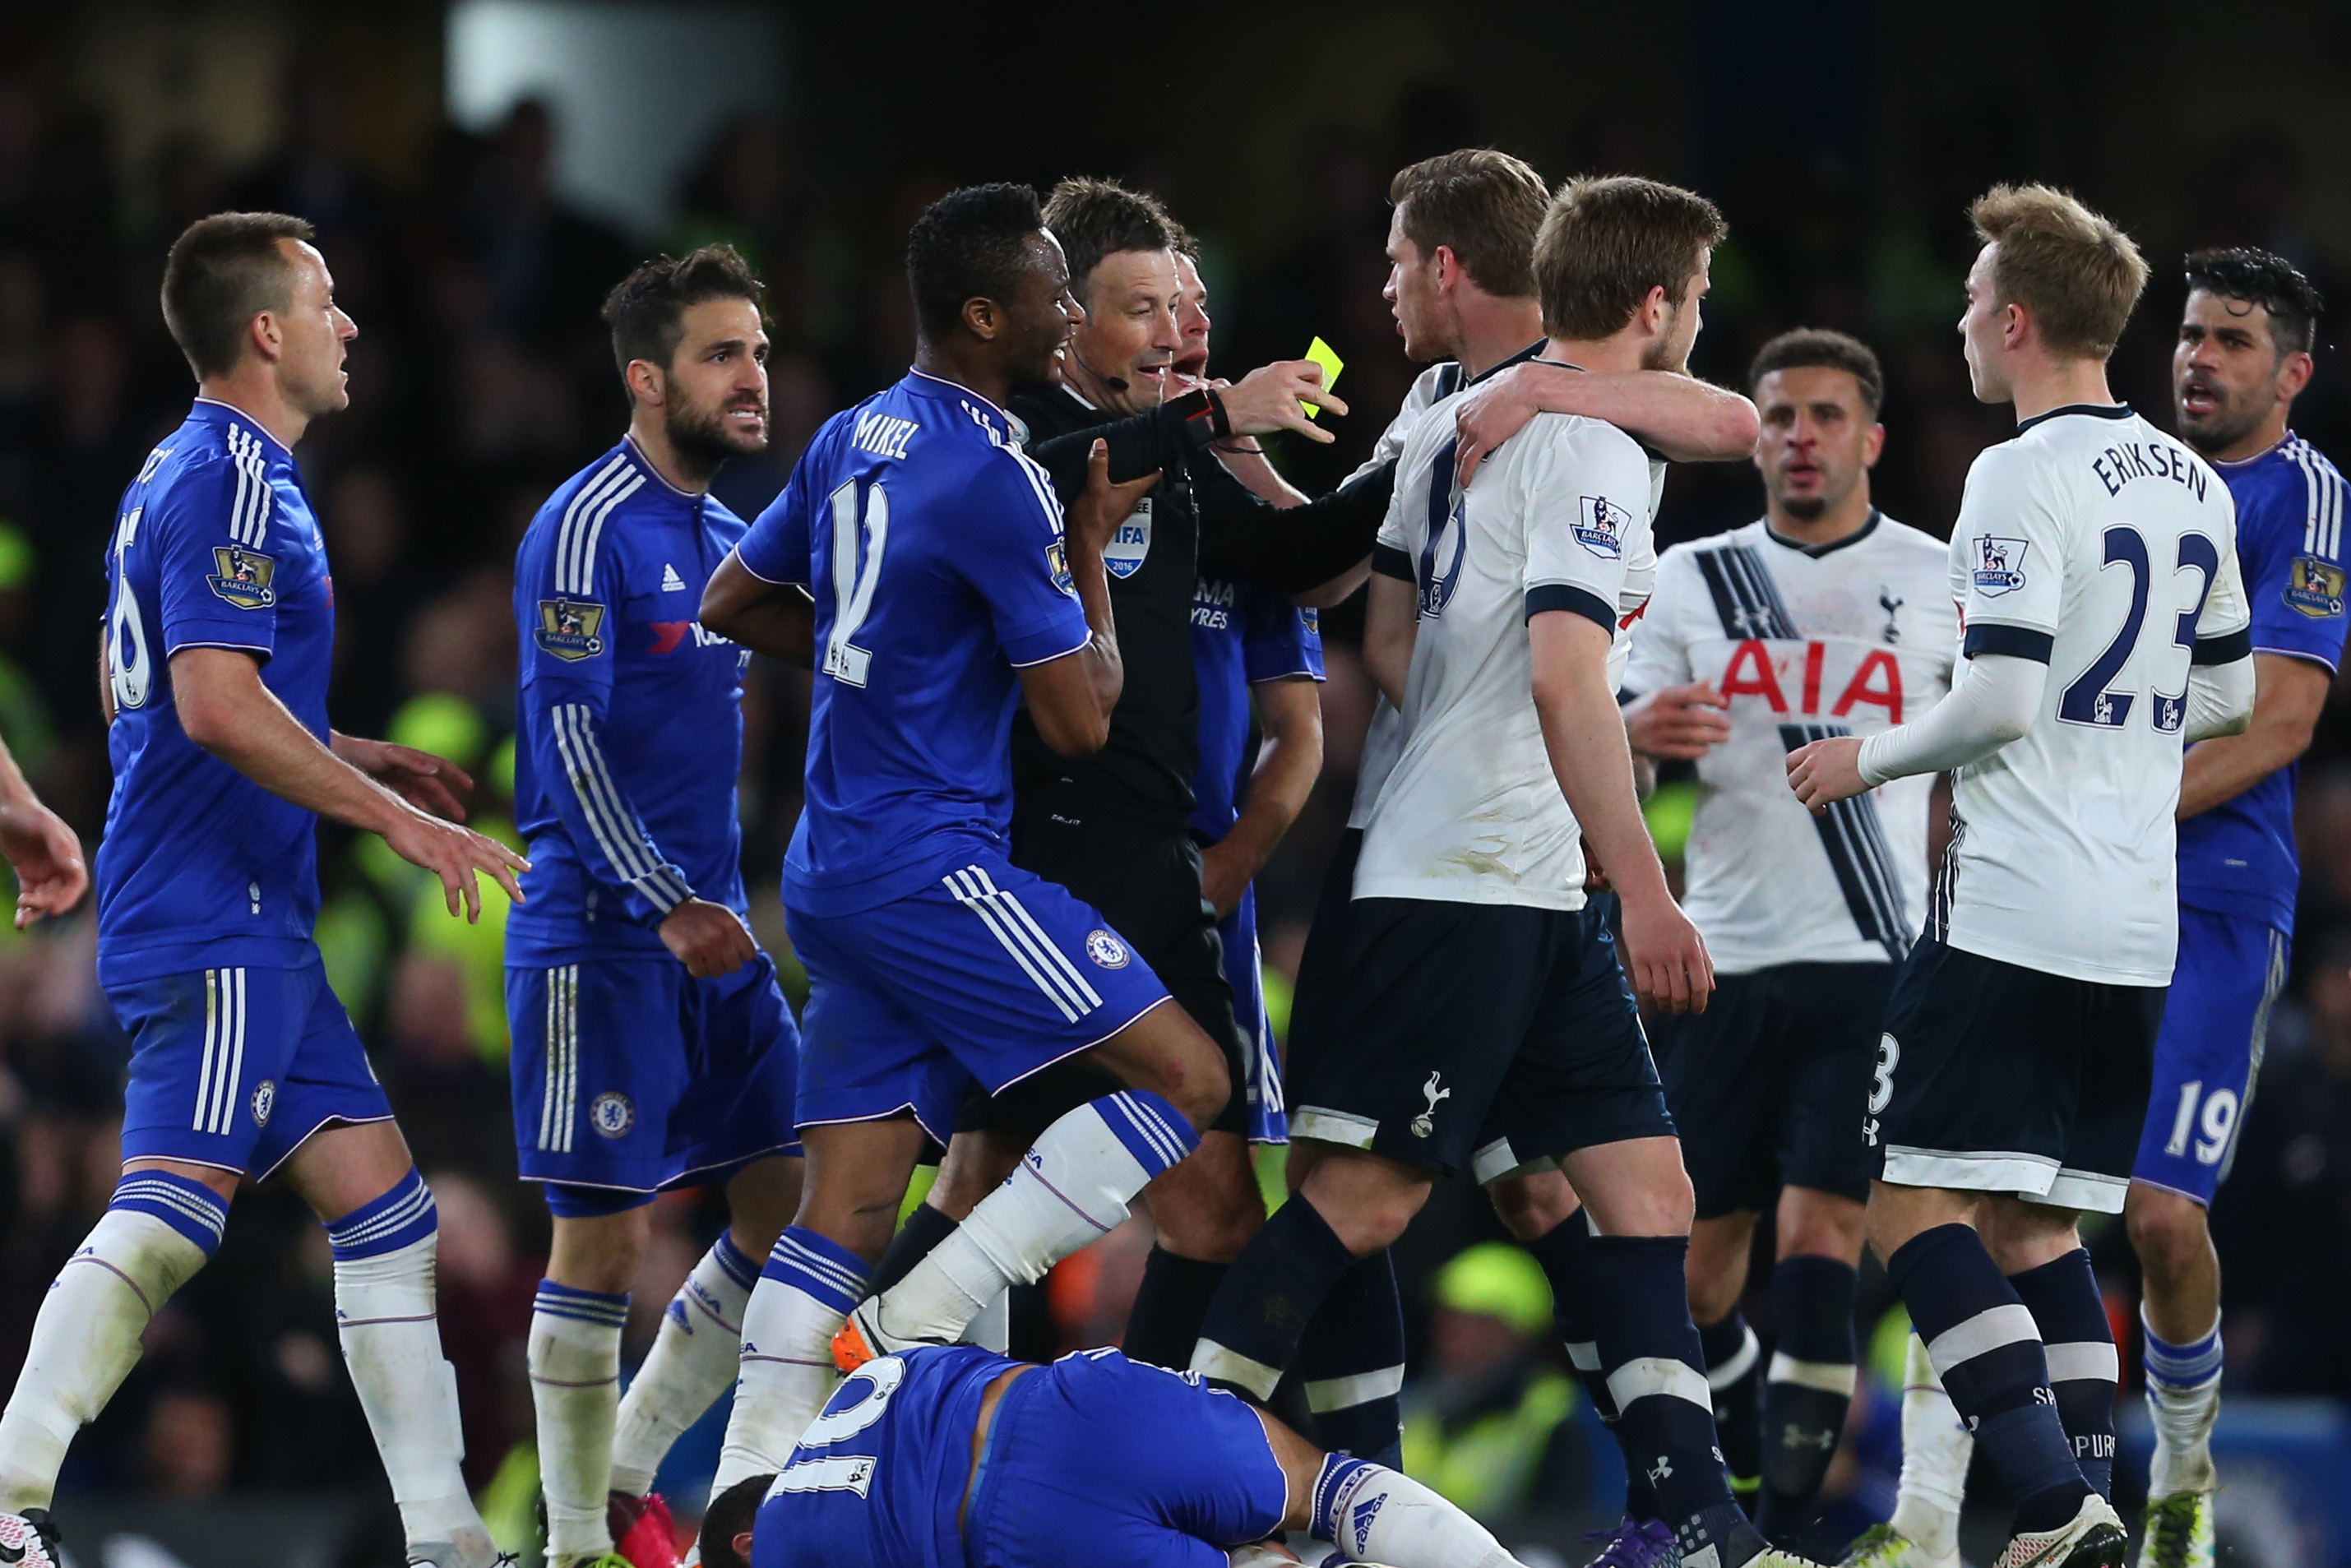 Chelsea Vs Tottenham Mauricio Pochettino Reacts After Stamford Bridge Brawl Bleacher Report Latest News Videos And Highlights